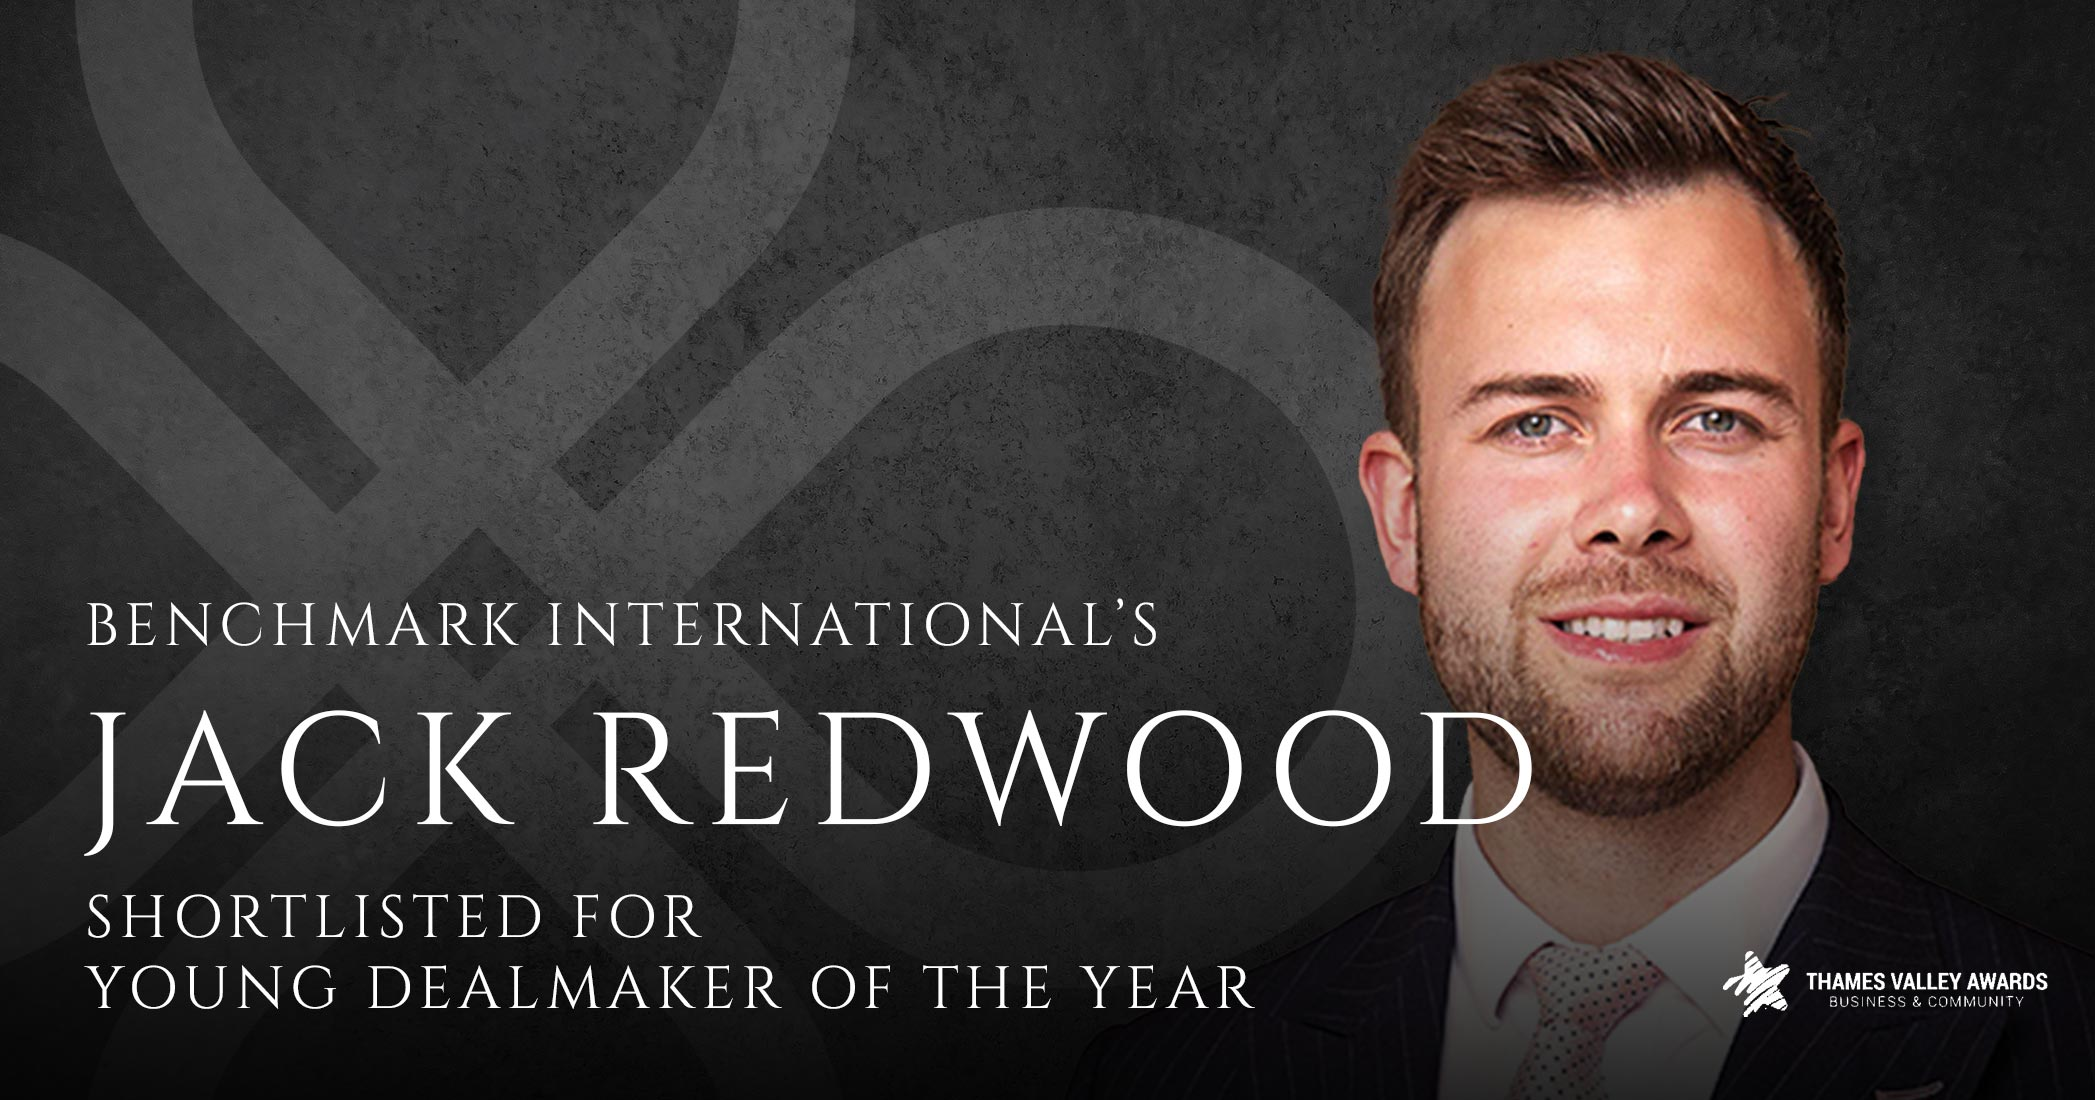 Benchmark International's Jack Redwood Shortlisted for Young Dealmaker of the Year